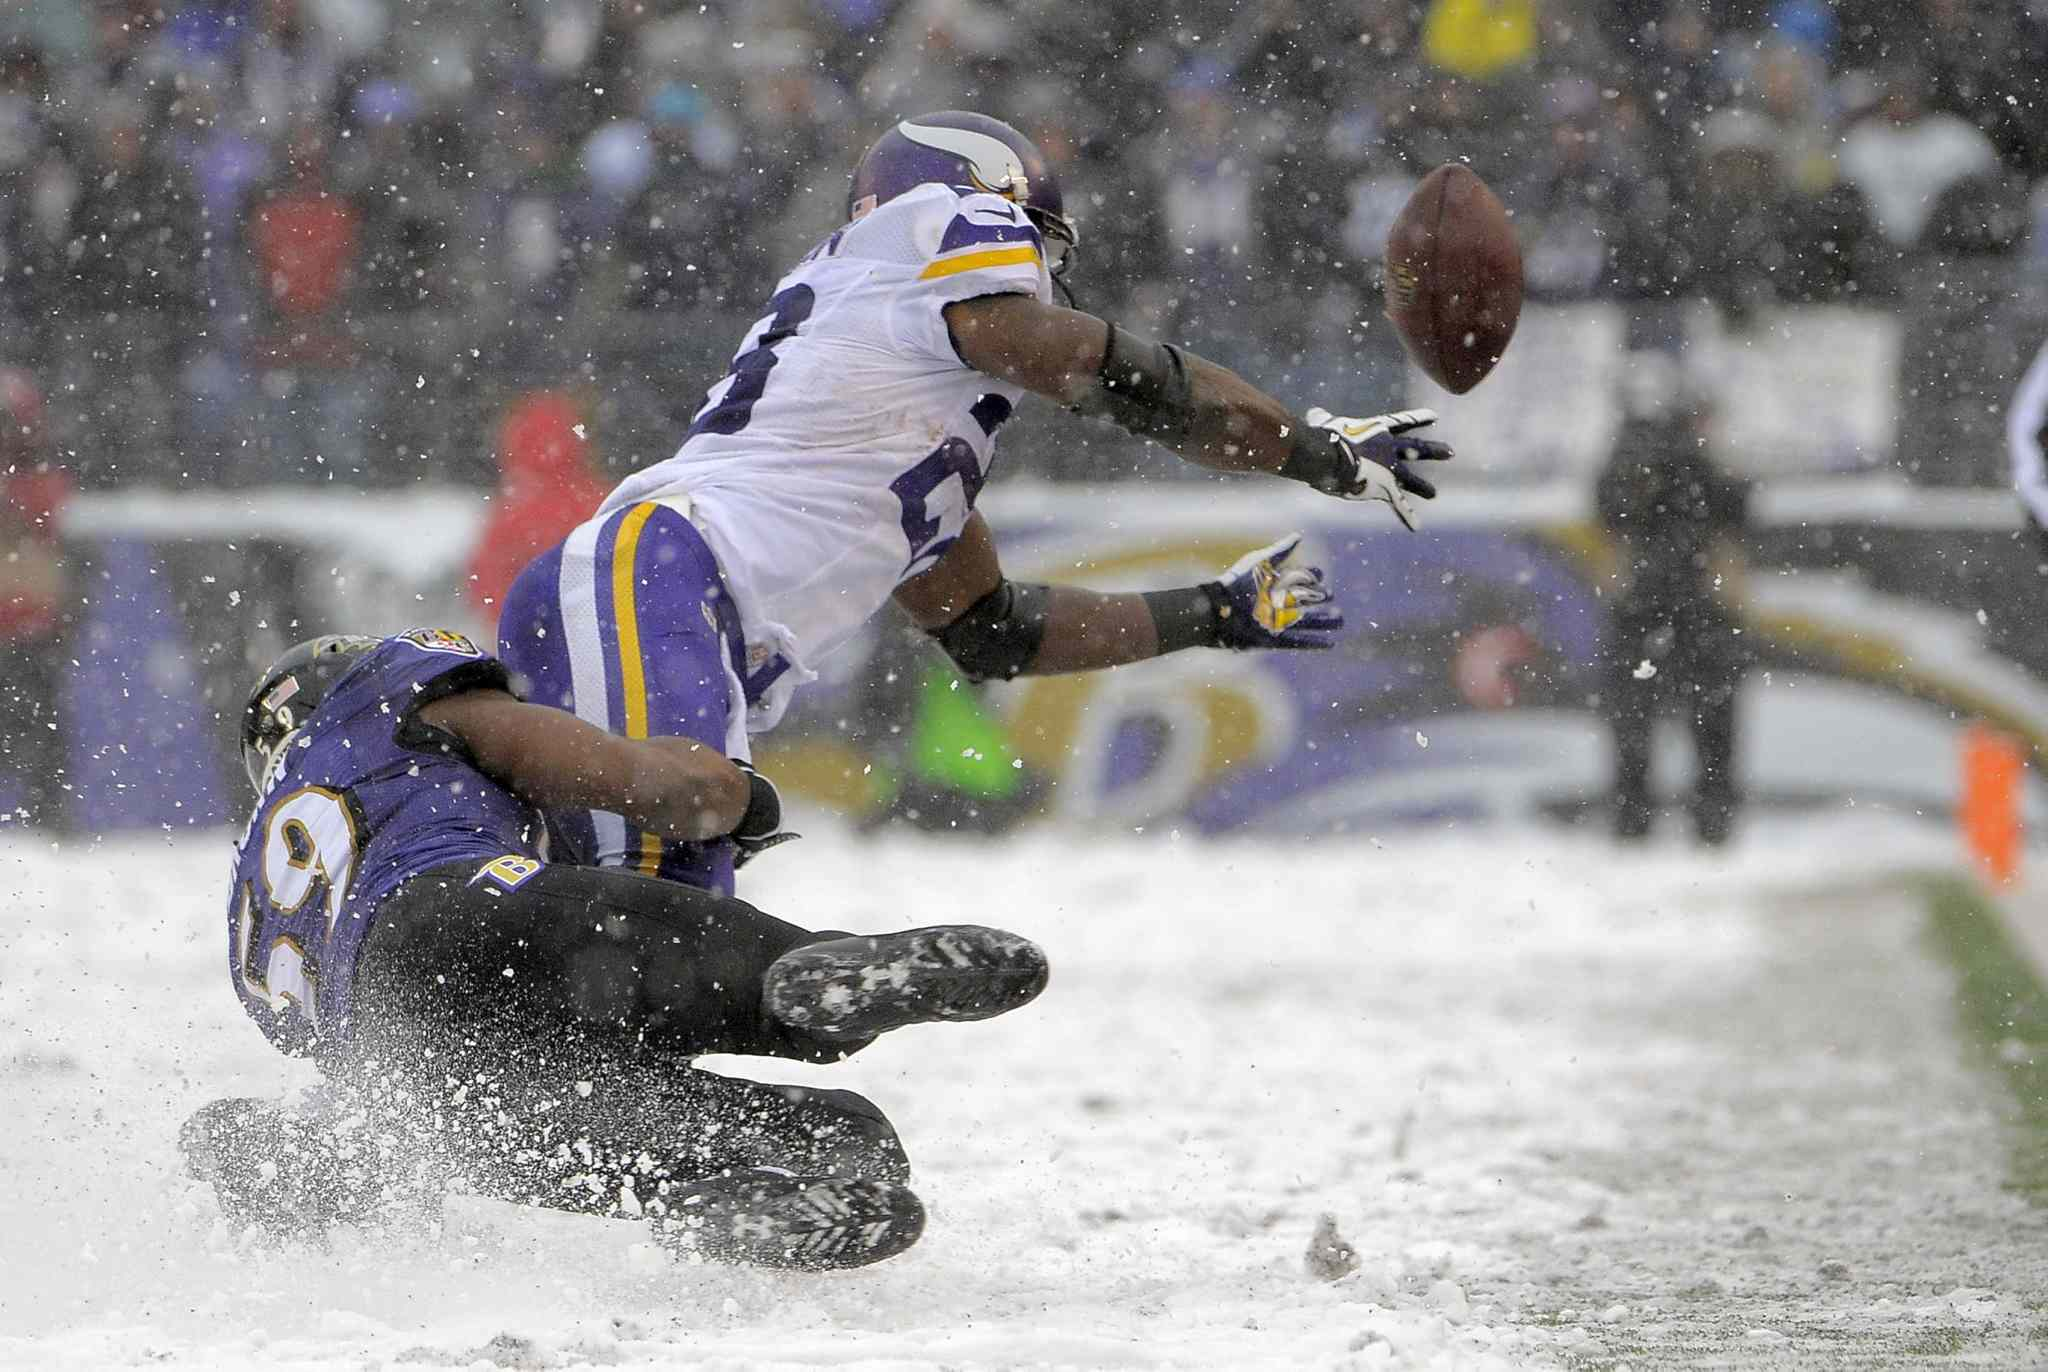 Baltimore Ravens linebacker Arthur Brown (left) tackles Minnesota Vikings running back Adrian Peterson, who fumbles the football as he falls and is injured during the second quarter. The Ravens beat the Vikings 29-26.